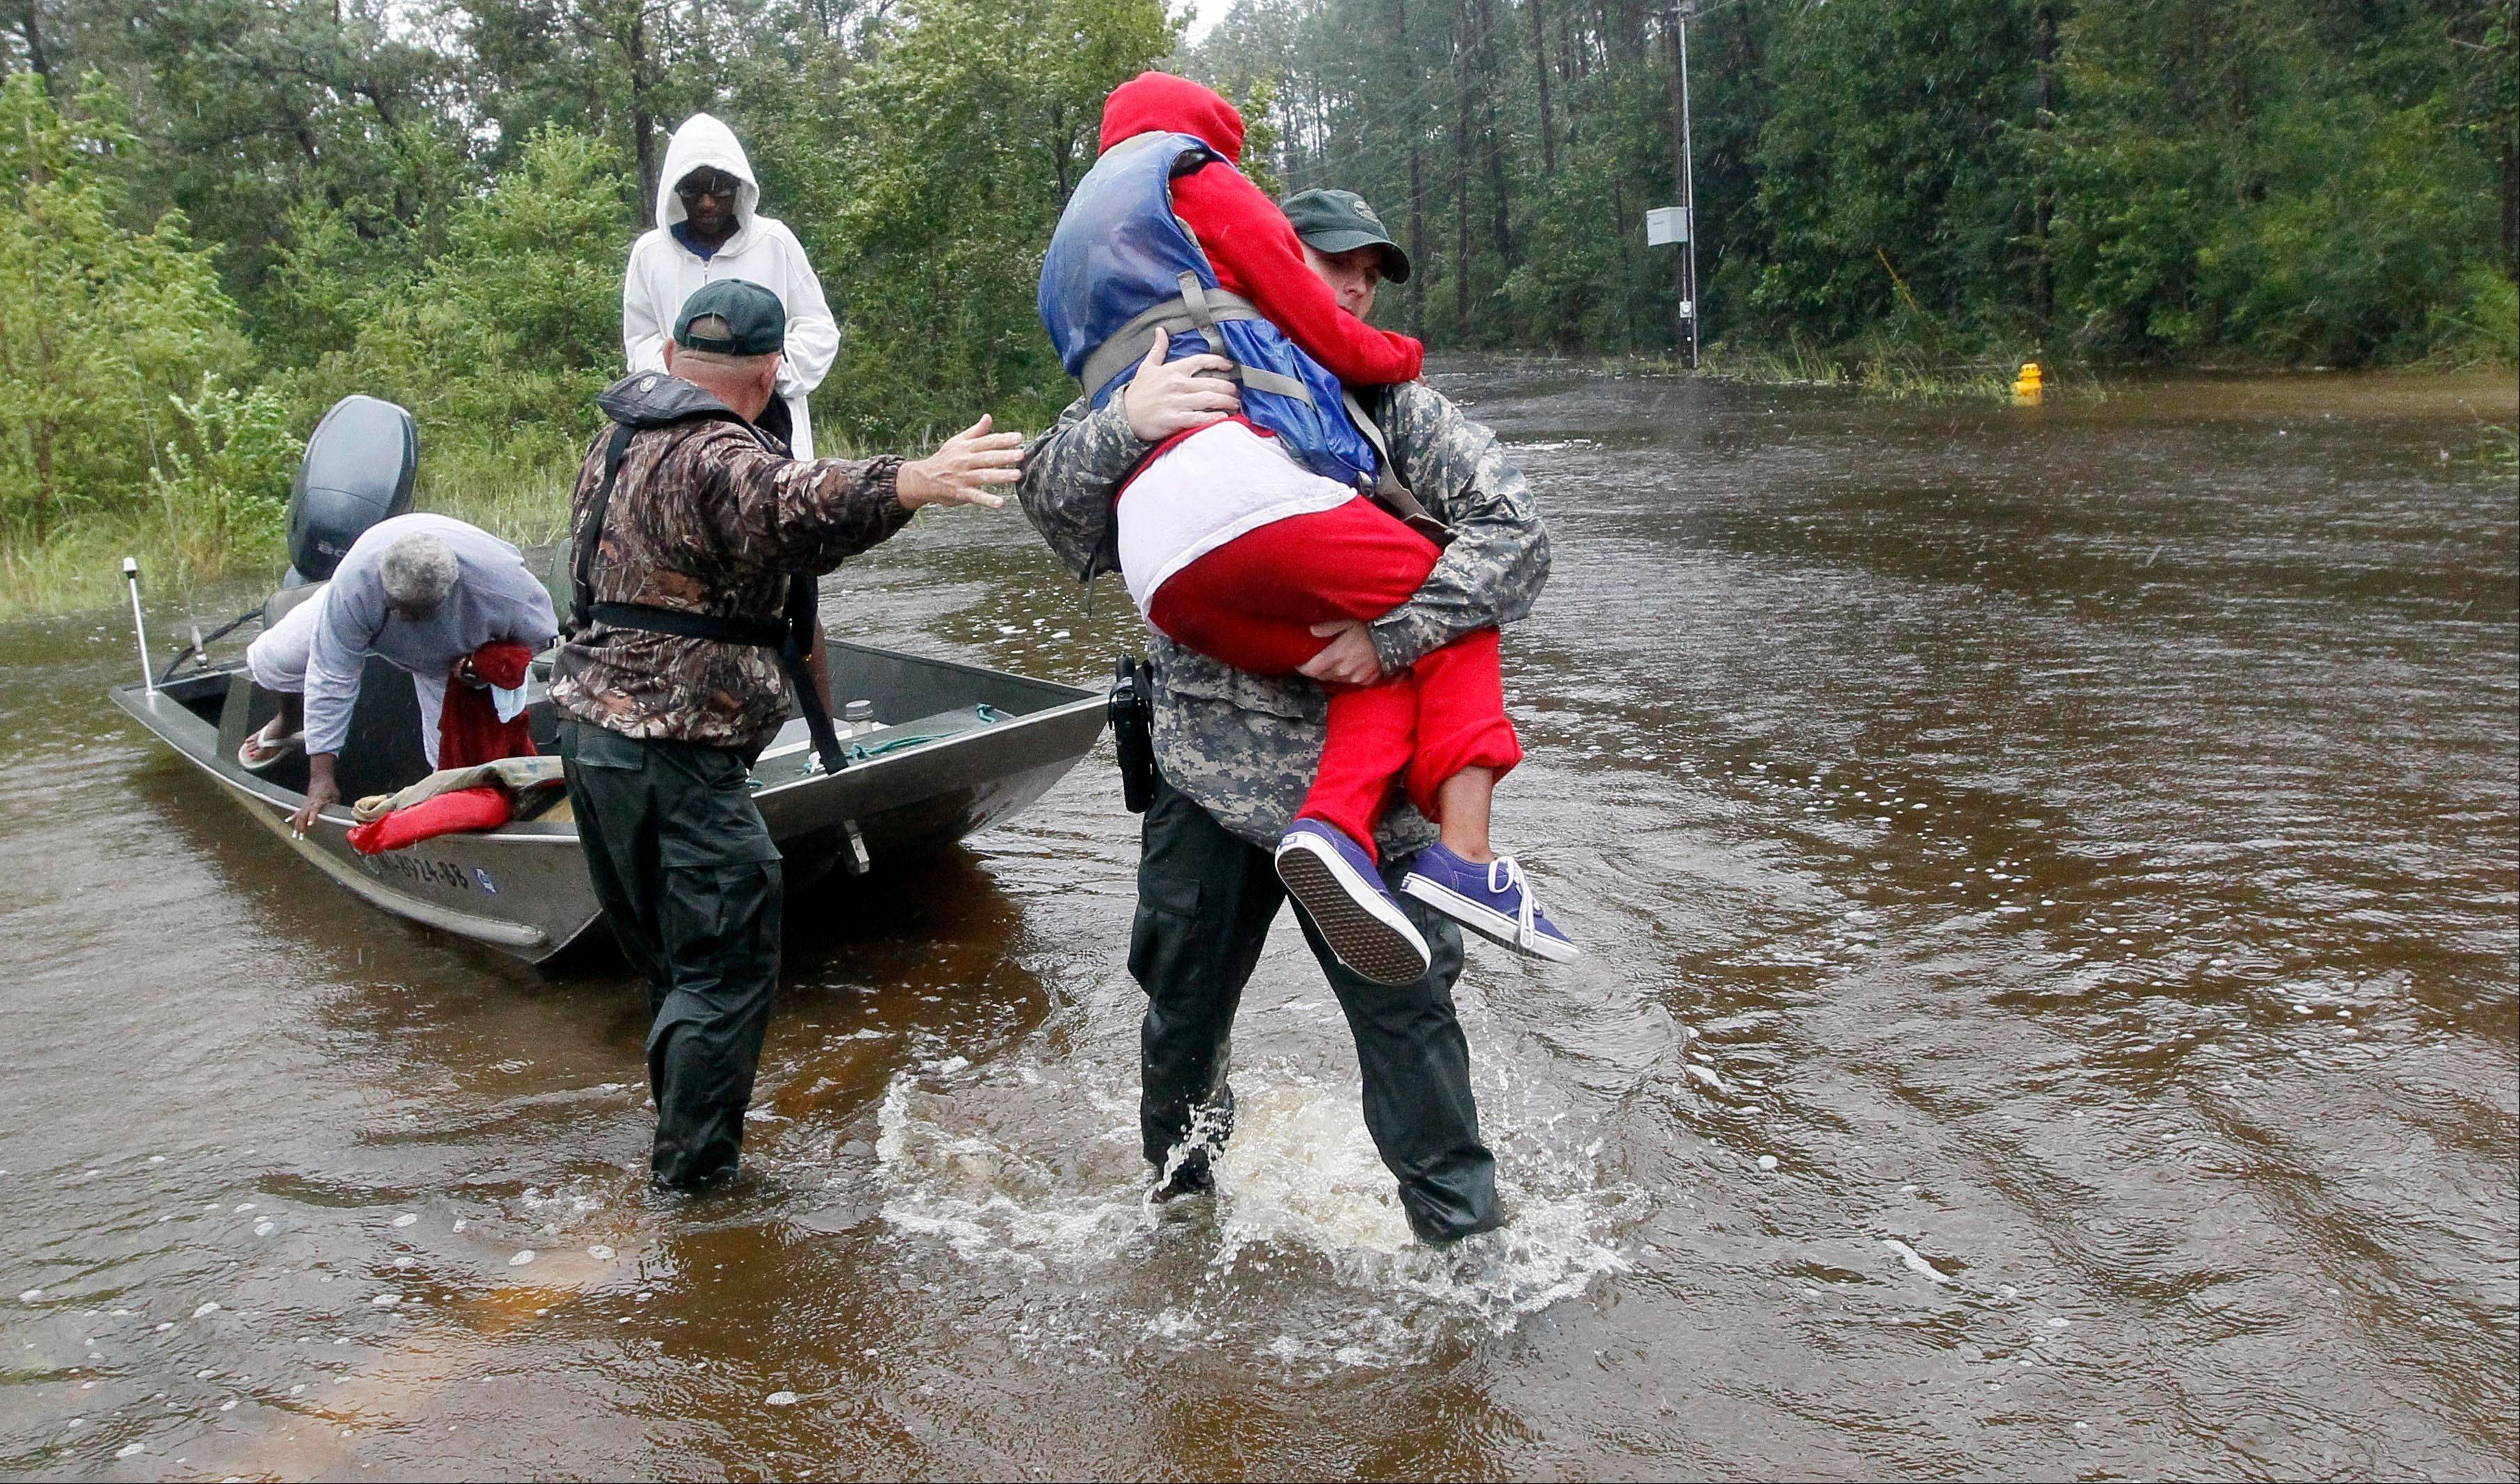 Law enforcement officers and first responders help a family to reach dry land after they were rescued from floodwaters caused by Isaac in Pearlington, Miss., Wednesday, Aug. 29, 2012, during a nonstop rain.